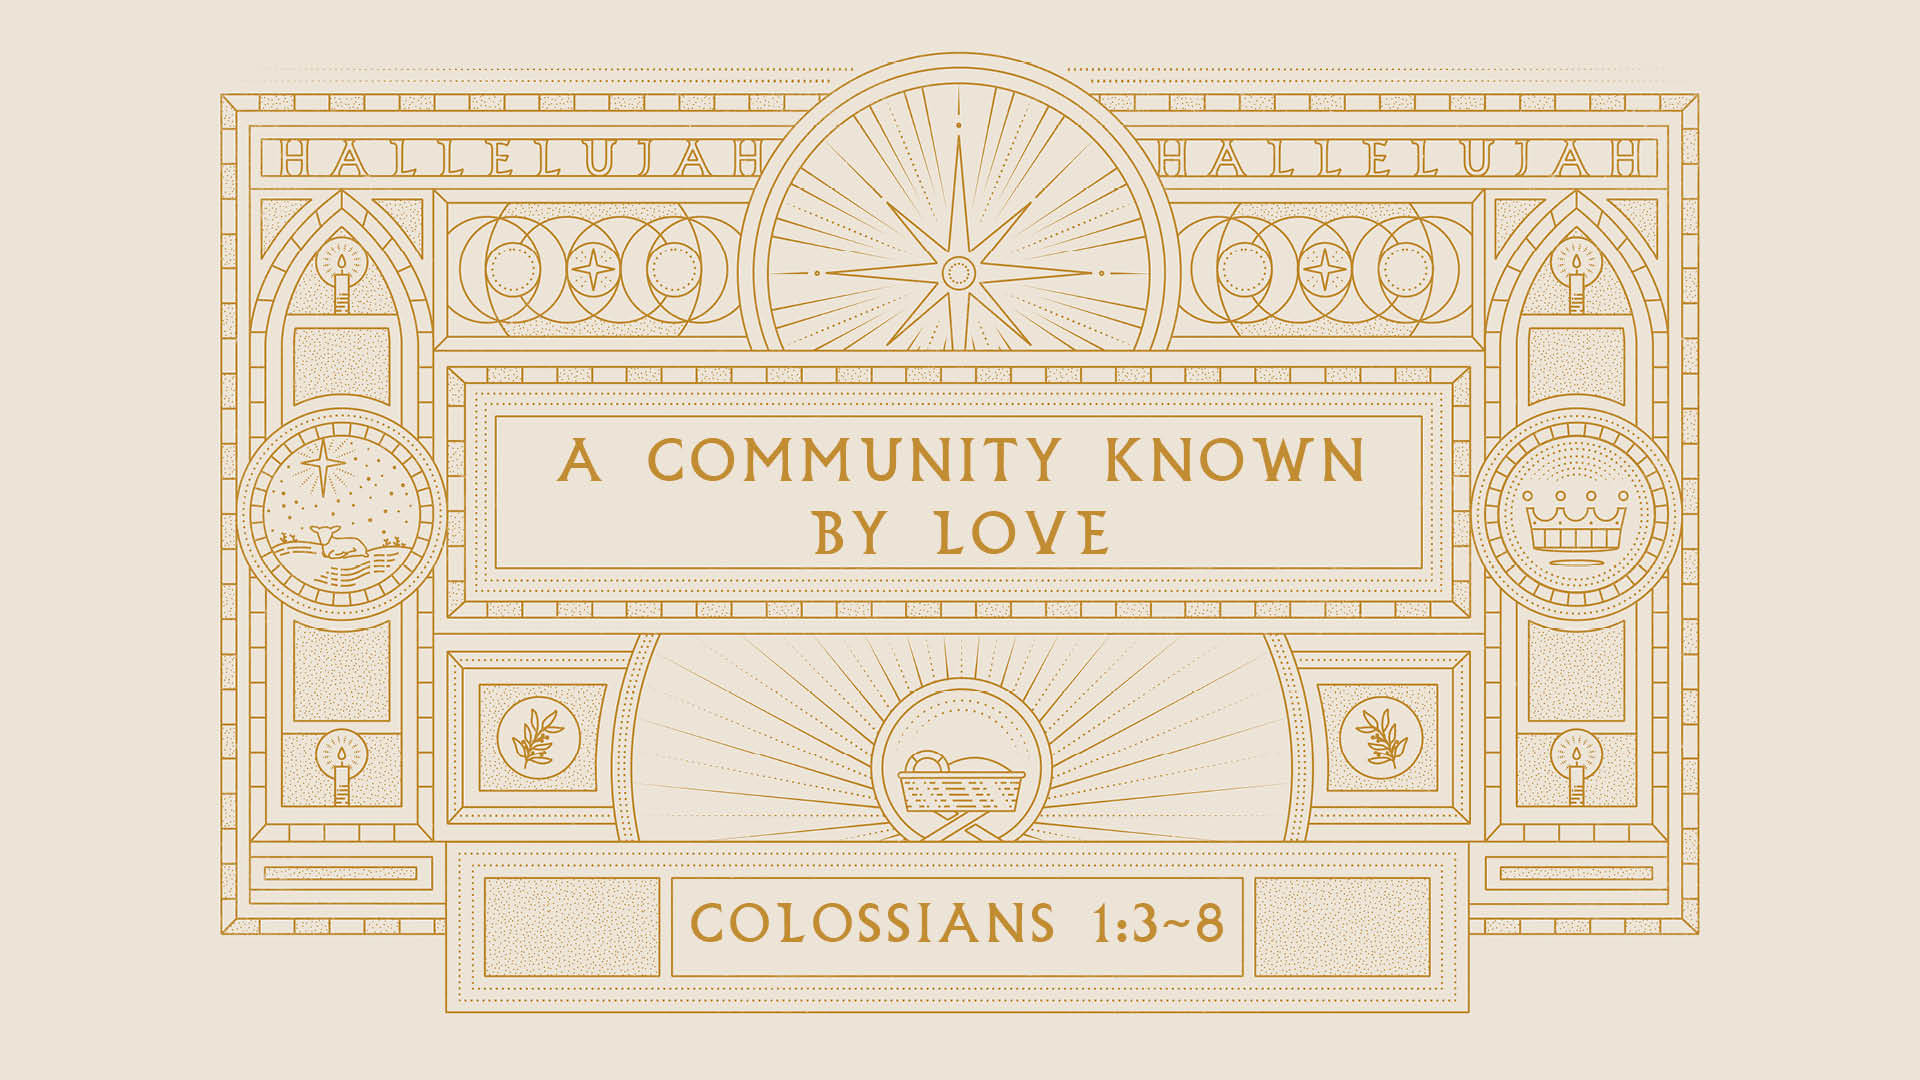 A Community Known by Love